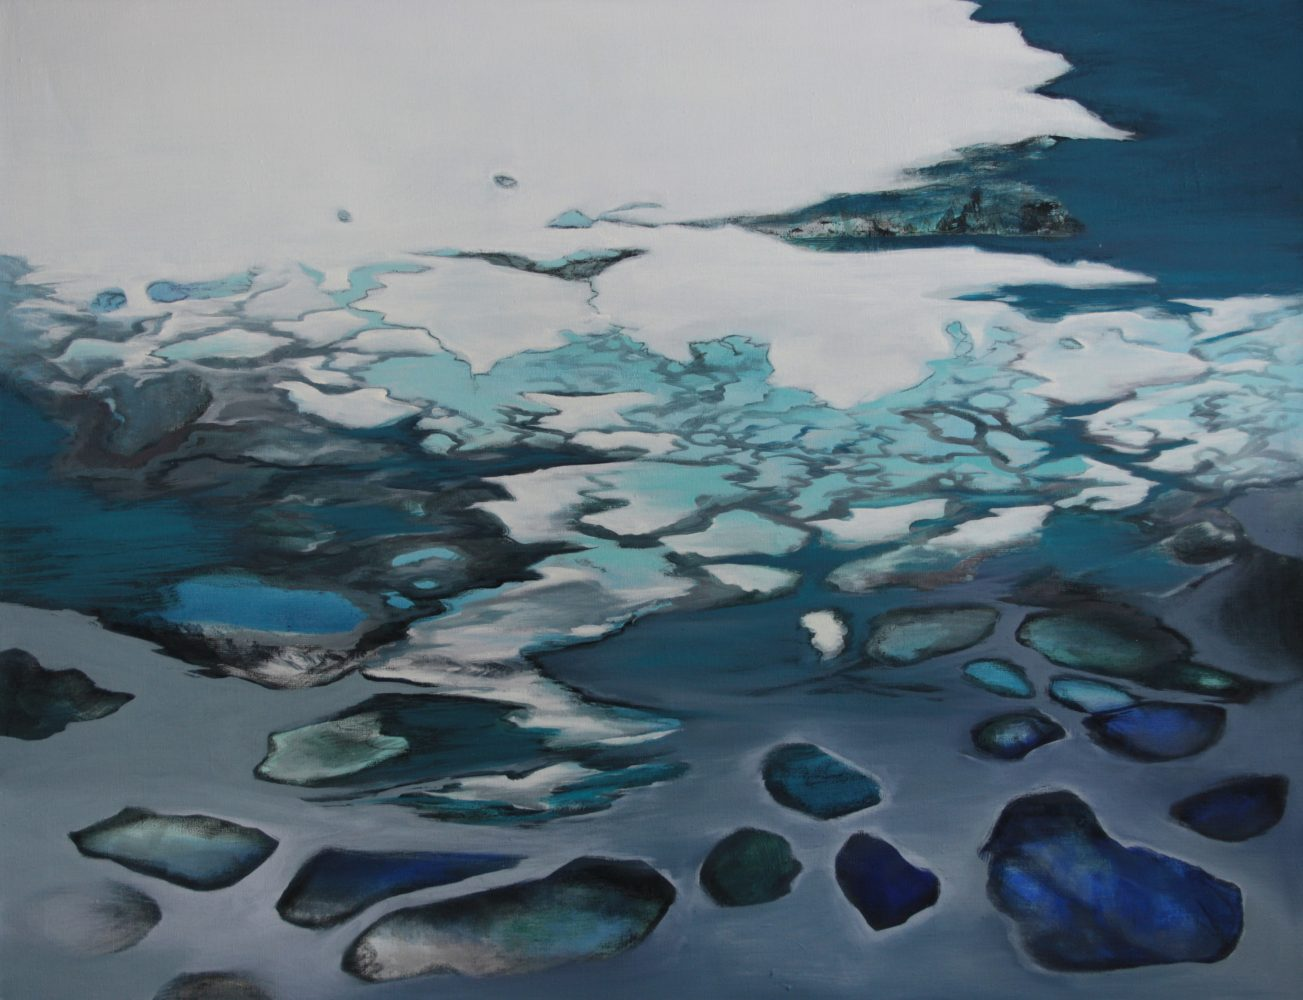 WATERLINES 2, oil on canvas 77 x 100 cm 2012